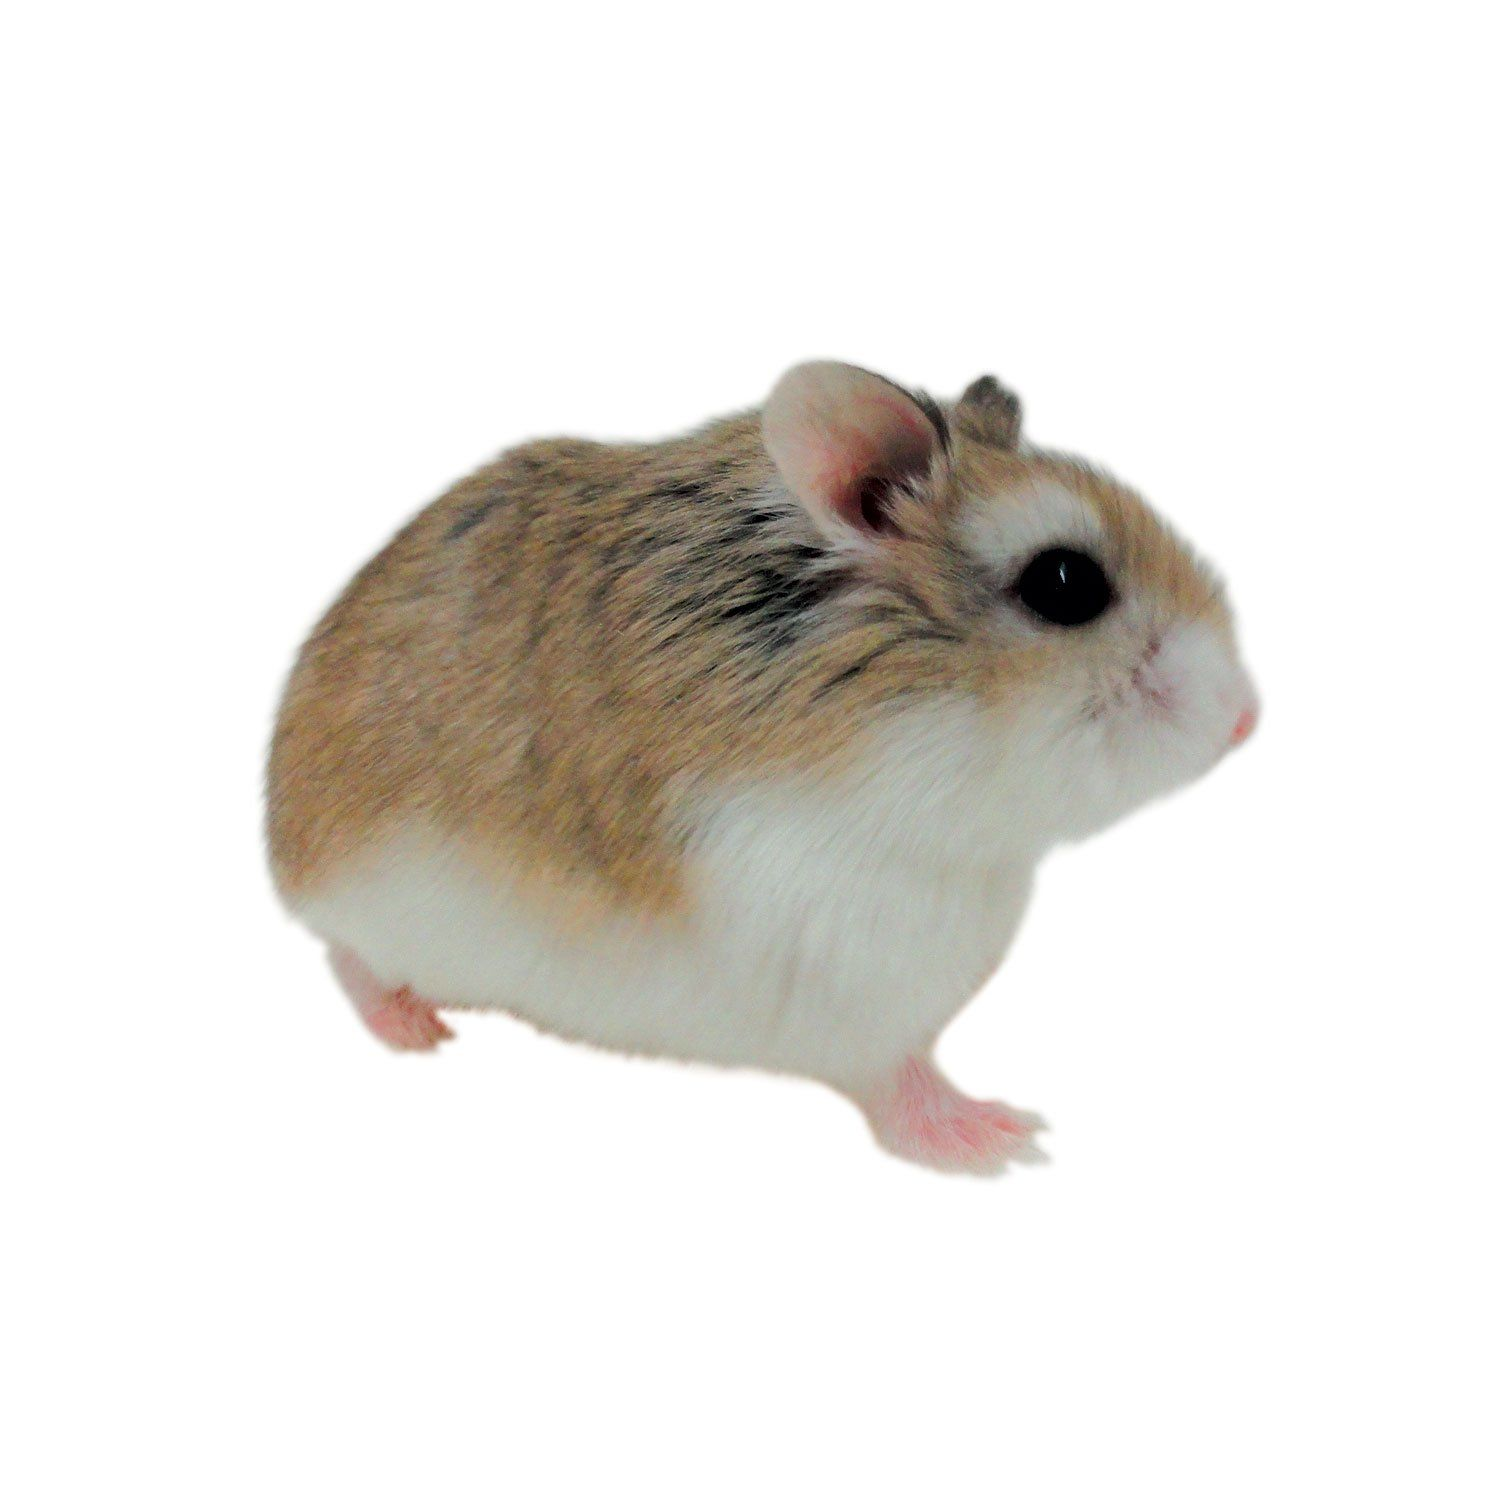 Roborovski Hamsters Are A Species Of Dwarf Hamster Also Known As Robos Or Robo Dwarf Hamsters Com Dwarf Hamsters For Sale Hamsters For Sale Roborovski Hamster